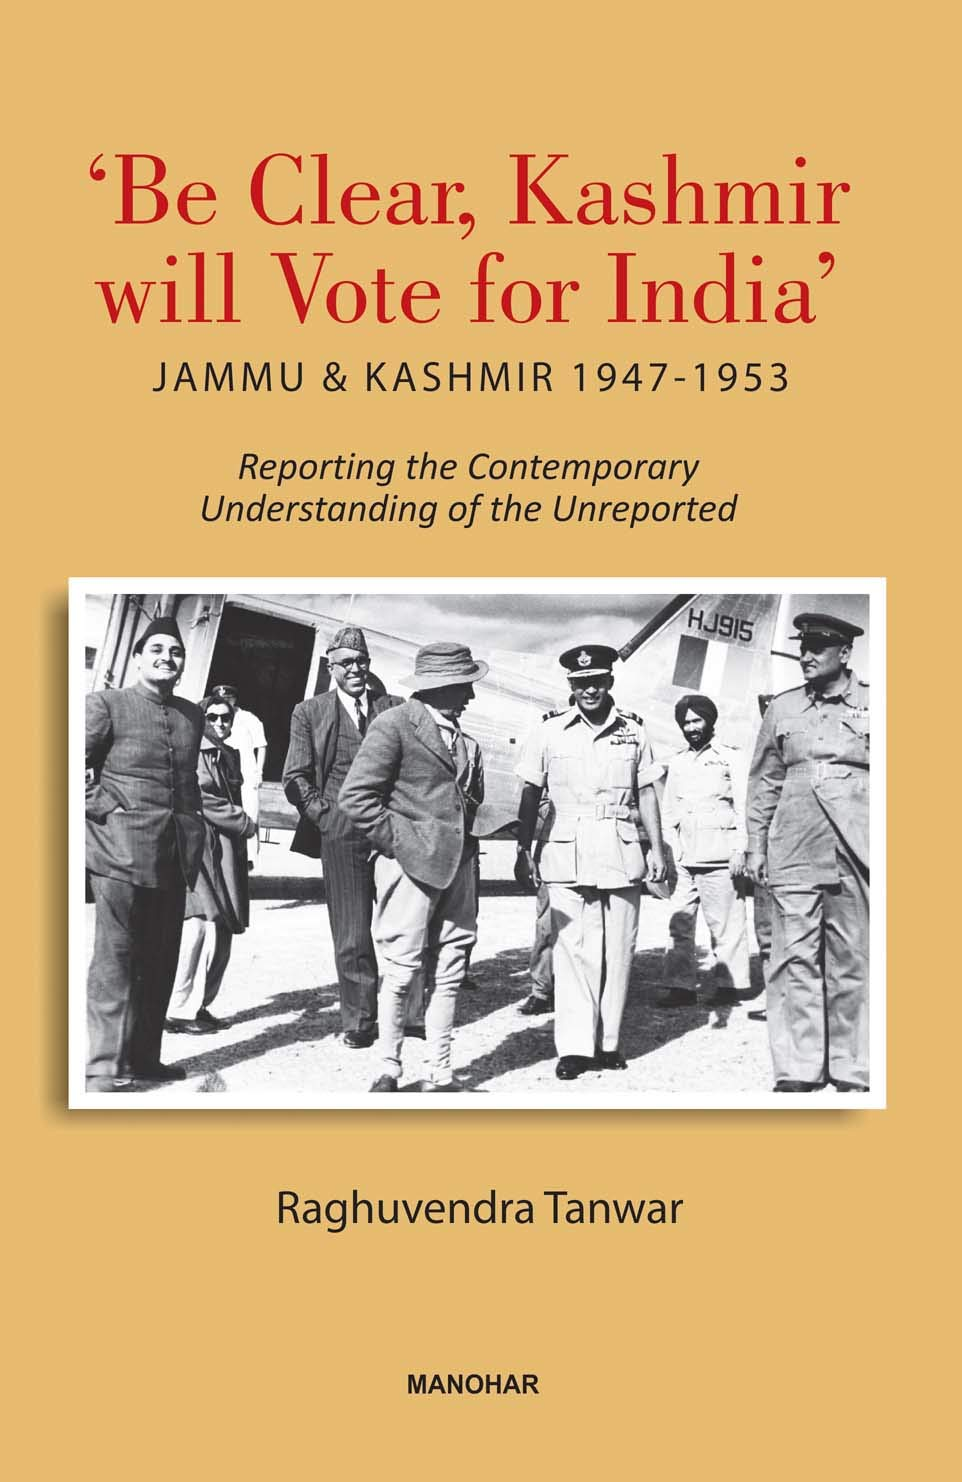 'Be Clear, Kashmir will Vote for India': Jammu & Kashmir 1947-1953 – Reporting the Contemporary Understanding of the Unreported